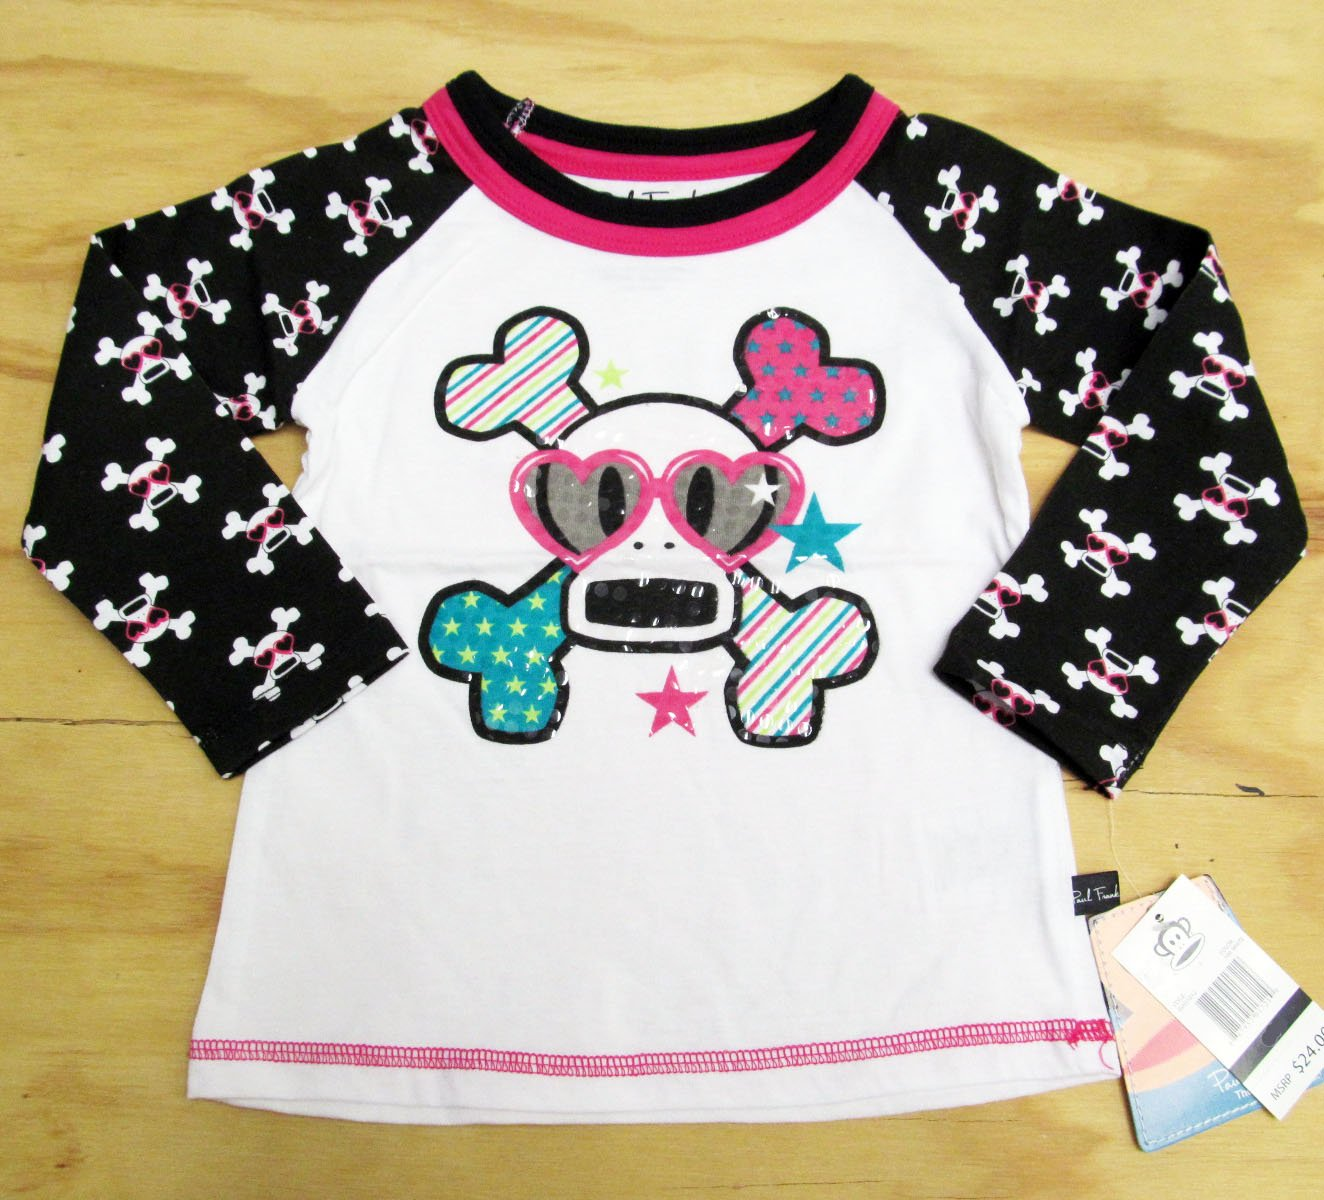 Paul Frank Girls 24 Months Skurvy Printed Raglan Tee Shirt White and Black Skull T-shirt